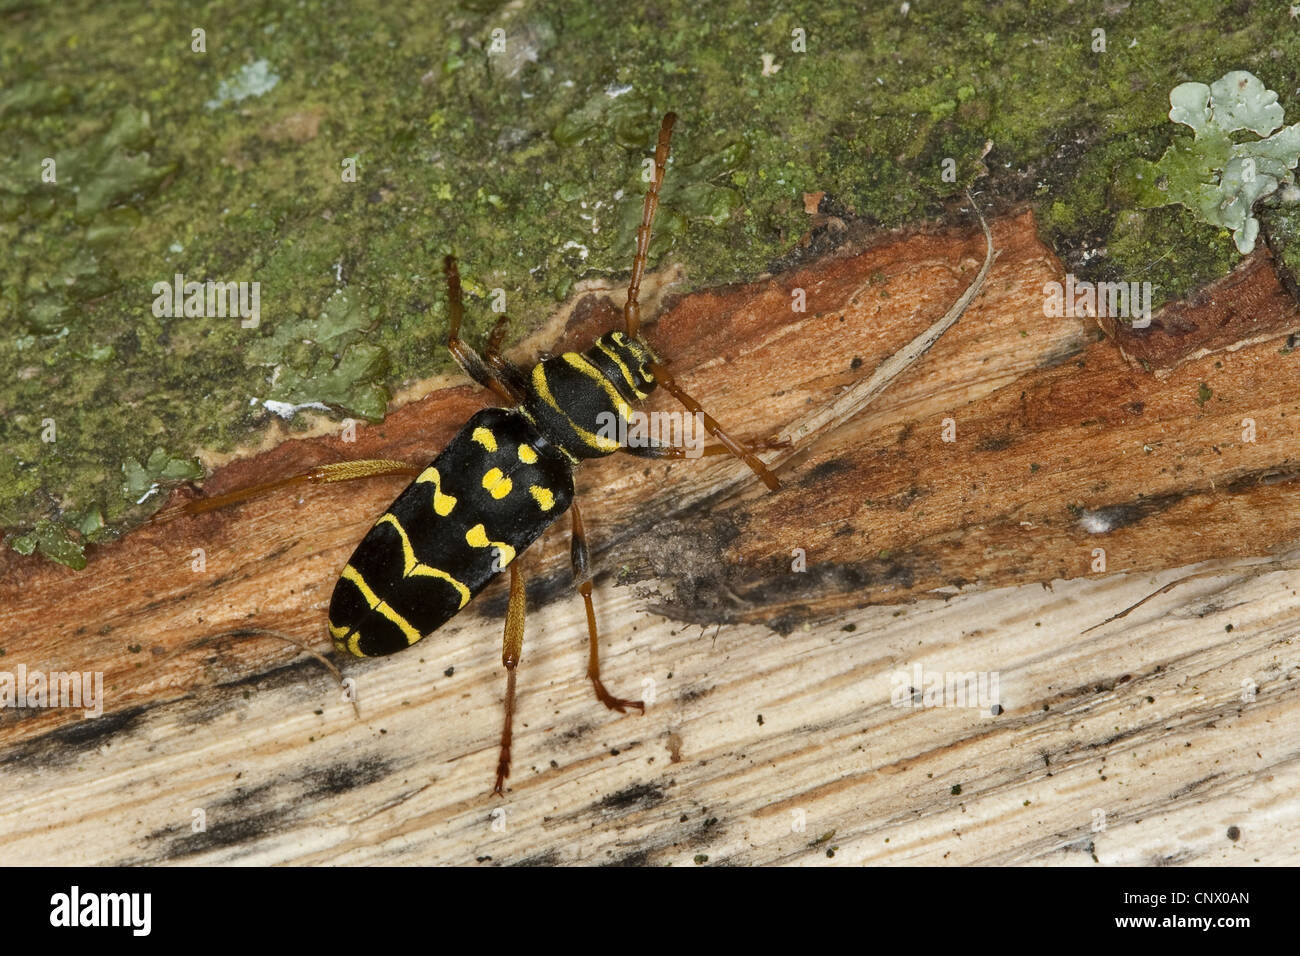 Yellow-bowed longhorn beetle (Plagionotus arcuatus, Clytus arcuatus), on oak wood, Germany - Stock Image